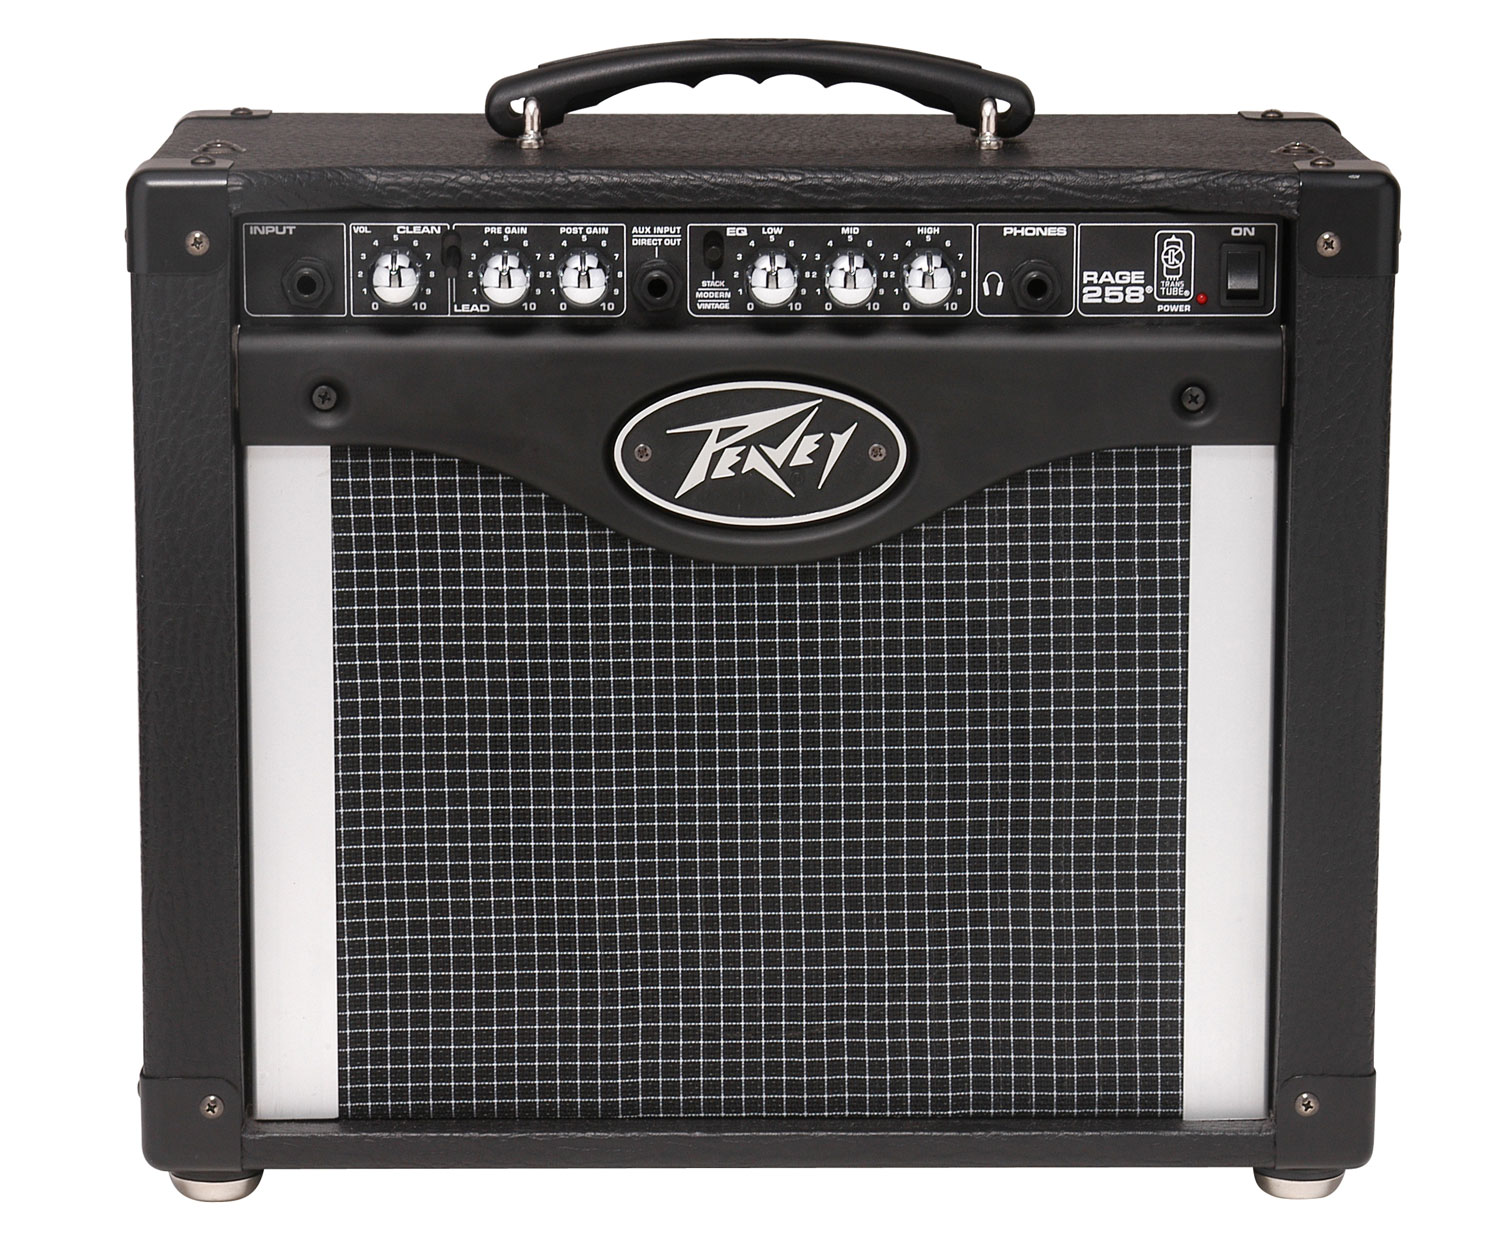 peavey rage 258 transtube series guitar amp 8 blue marvel speaker 583600 pev13 583600. Black Bedroom Furniture Sets. Home Design Ideas